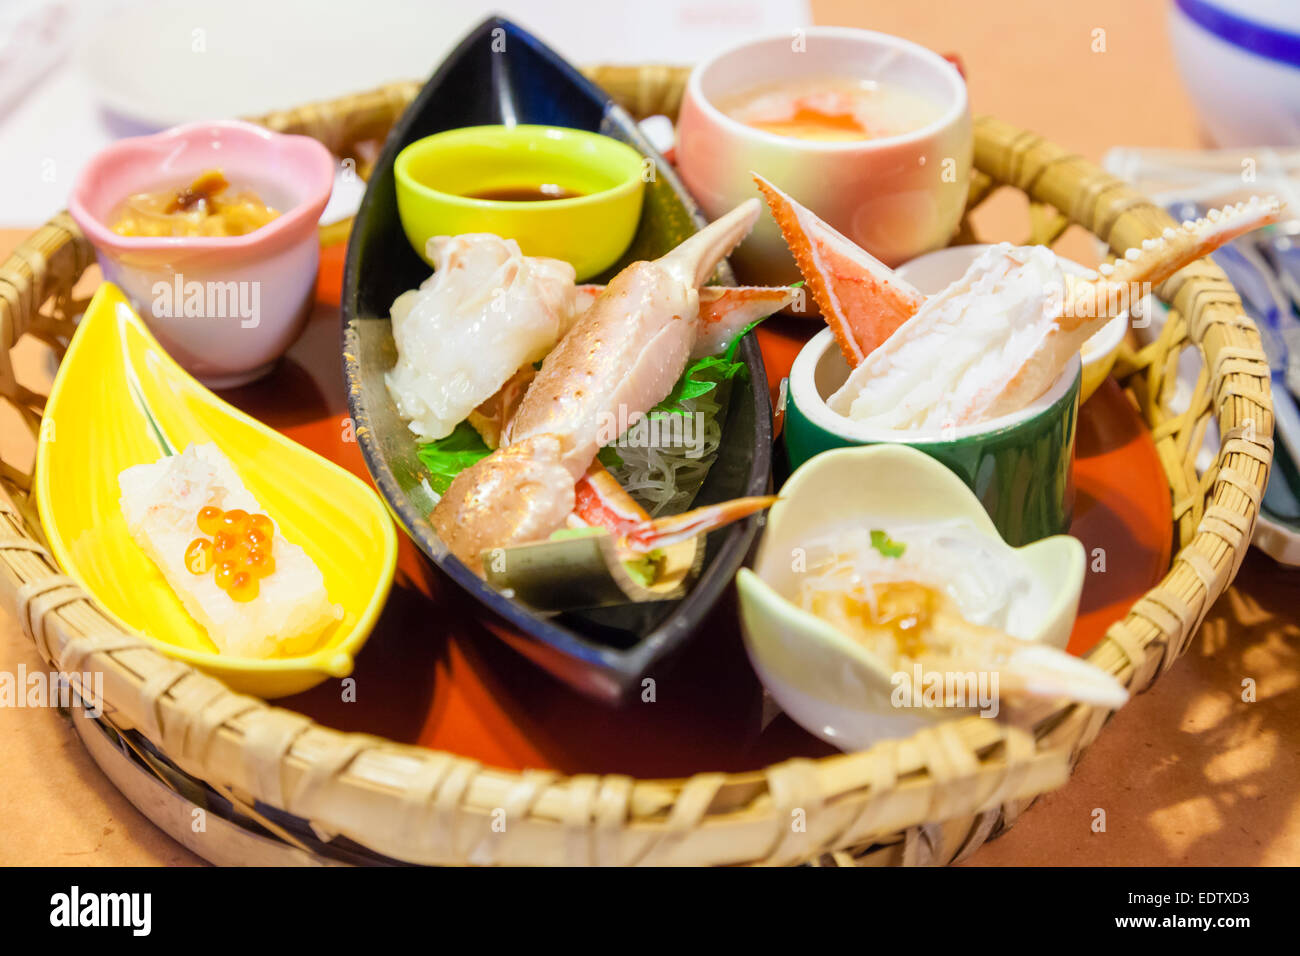 Japanese crab feast - Stock Image